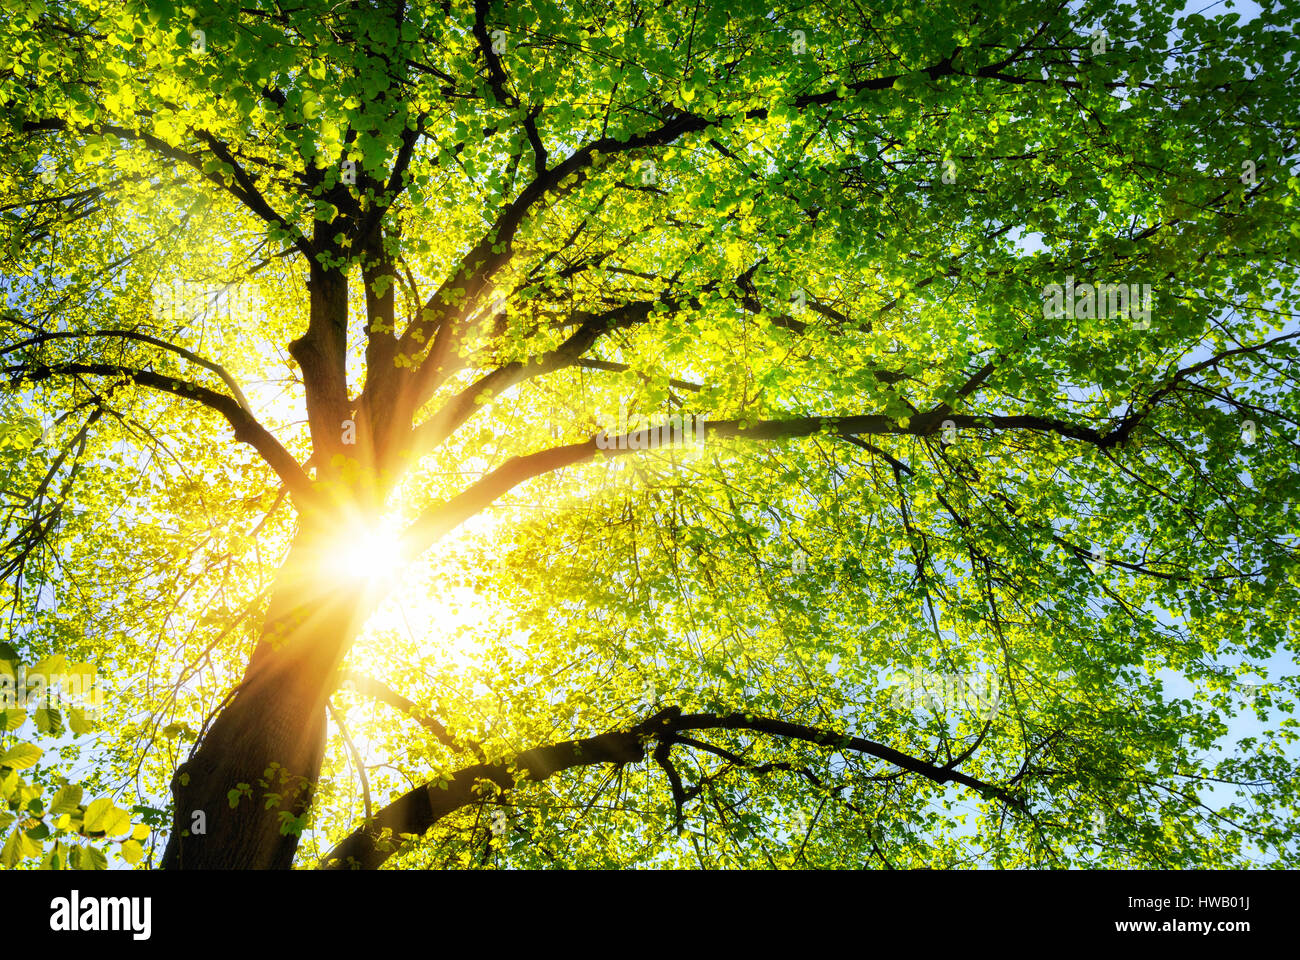 The sun shines warmly through the canopy of a green lime tree - Stock Image